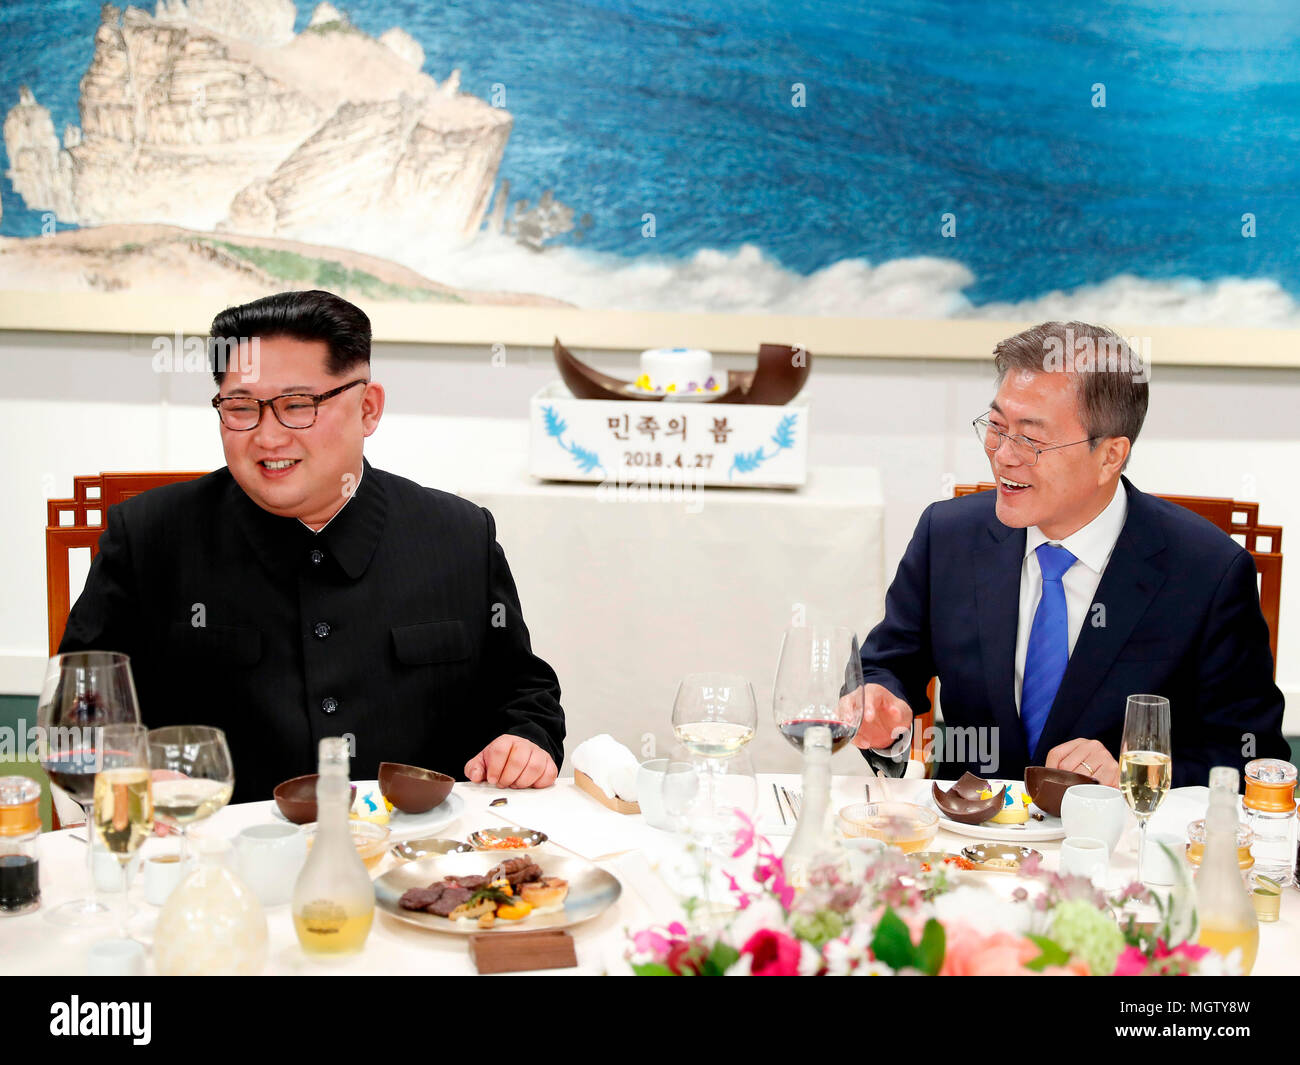 Moon Jae-In and Kim Jong-Un, Apr 27, 2018 : South Korean President Moon Jae-In (R) and North Korean leader Kim Jong-Un use mallets to open Mango mousse decorated with a flag symbolizing an unified Korean Peninsula, during a banquet after the historic inter-Korean summit at the Peace House of the Panmunjom in the Demilitarized Zone (DMZ) separating the two Koreas in Paju, north of Seoul, South Korea. The historic summit ended on April 27 with calls for the complete denuclearization of the Korean Peninsula and an immediate halt to all hostile acts, local media reported. EDITORIAL USE ONLY (Photo Stock Photo